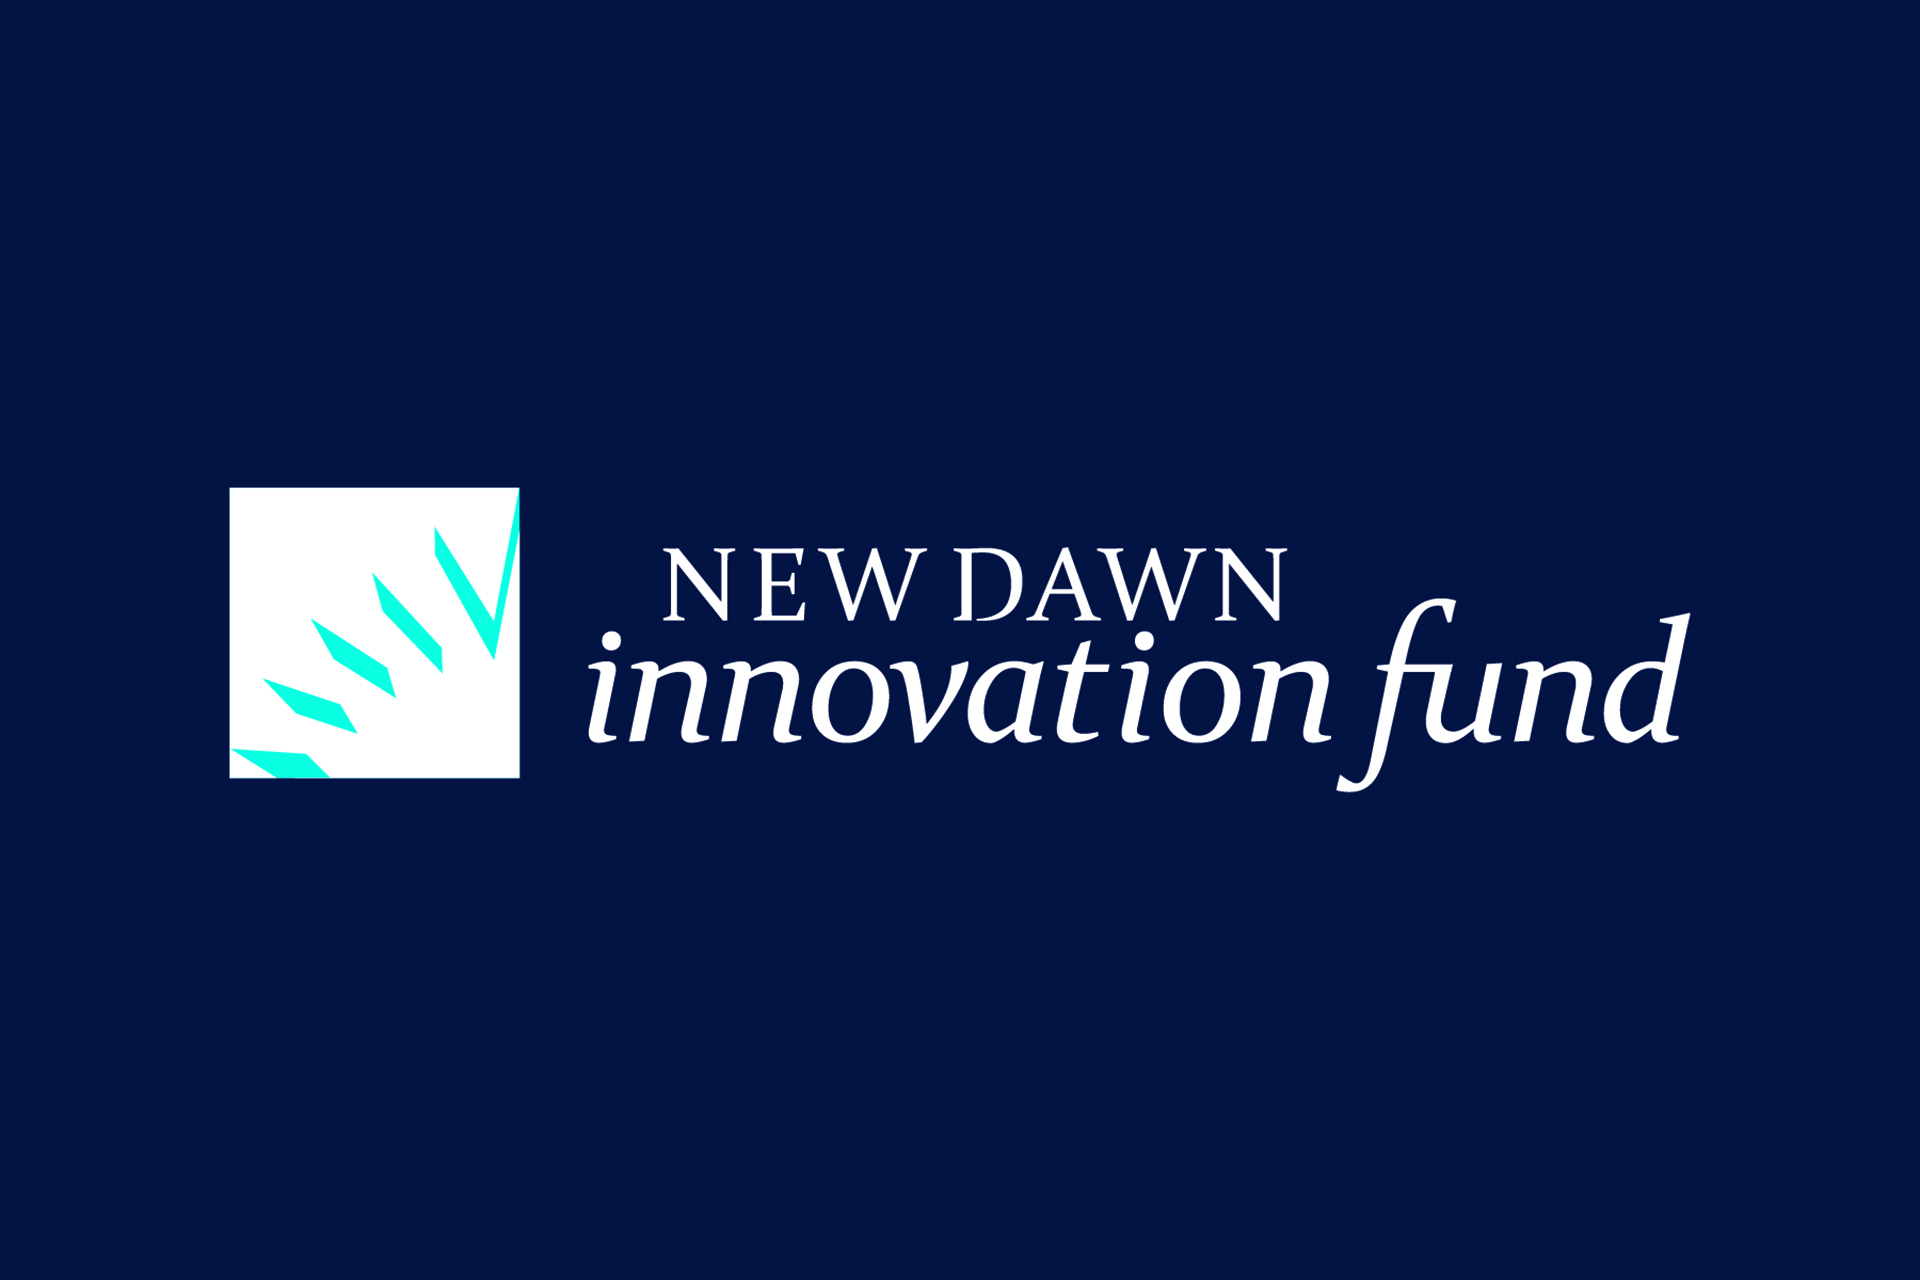 New Dawn Innovation Fund